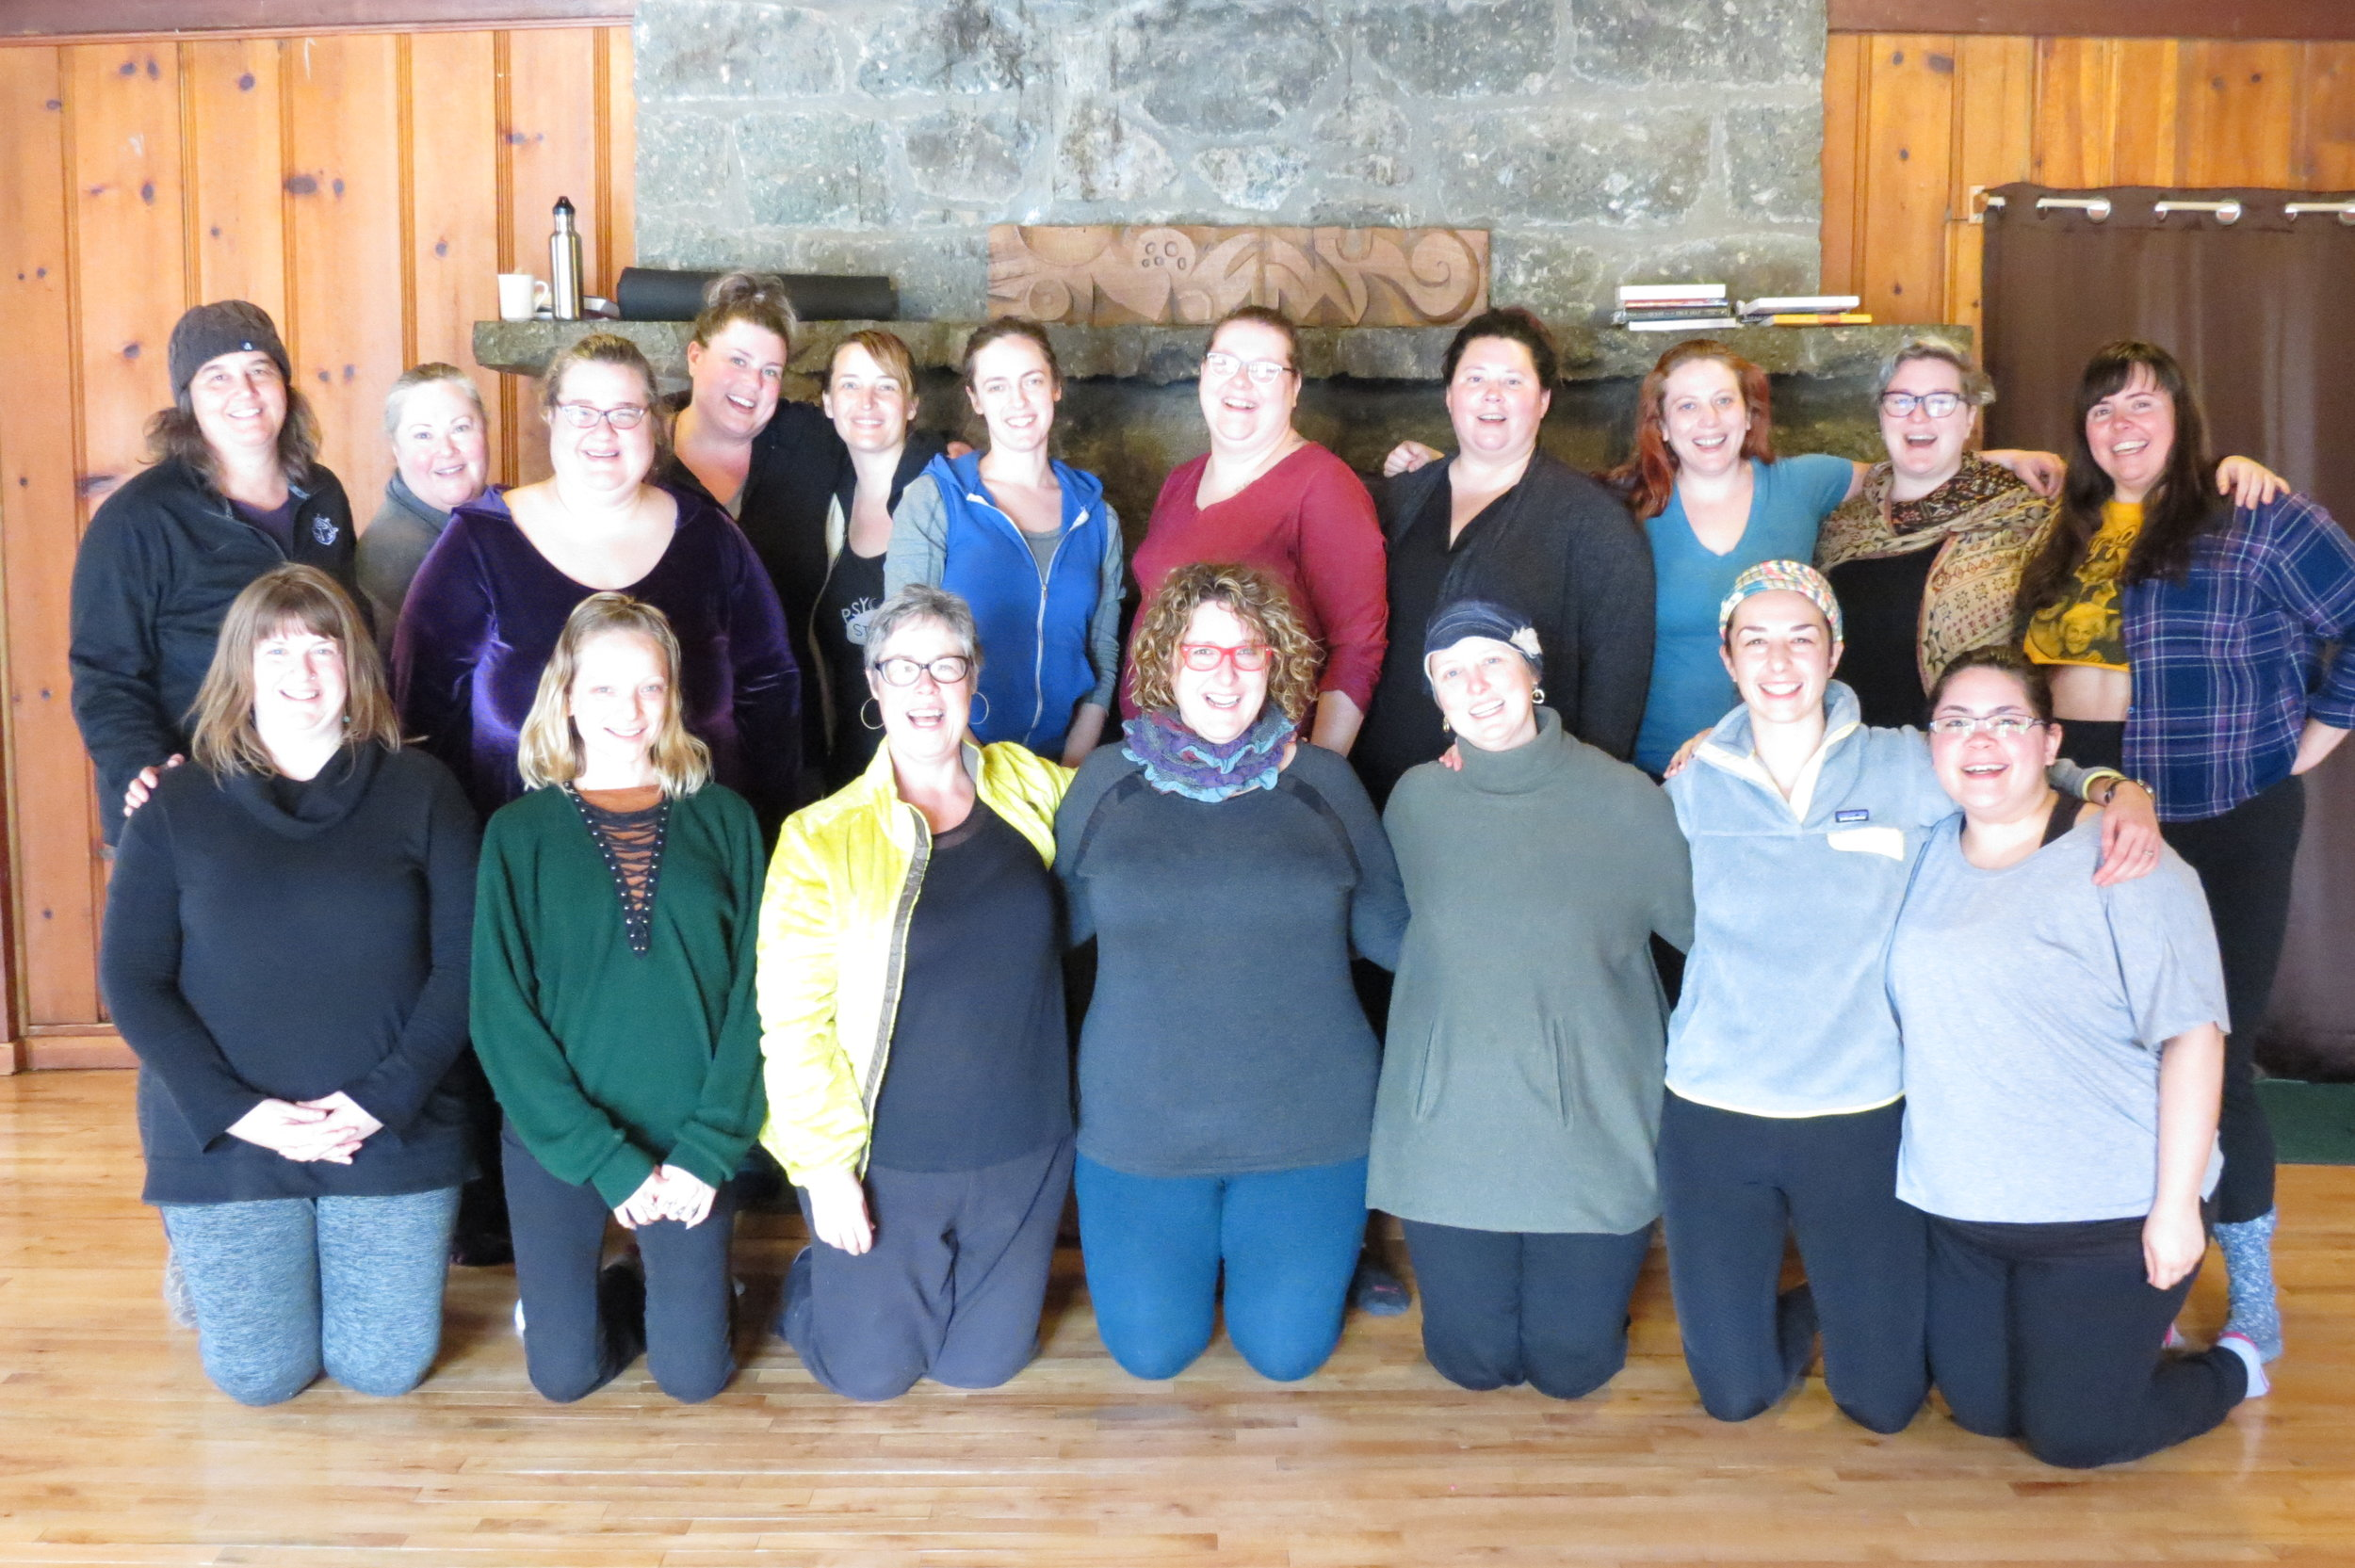 Yoga for Bigger Bodies 2018 Breitenbush Retreat! 17 women came together to create community, love, ferocity, self-exploration and intuitive movement. I'm so grateful to have witnessed such vulnerability and strength. Thank you from the bottom of my heart!